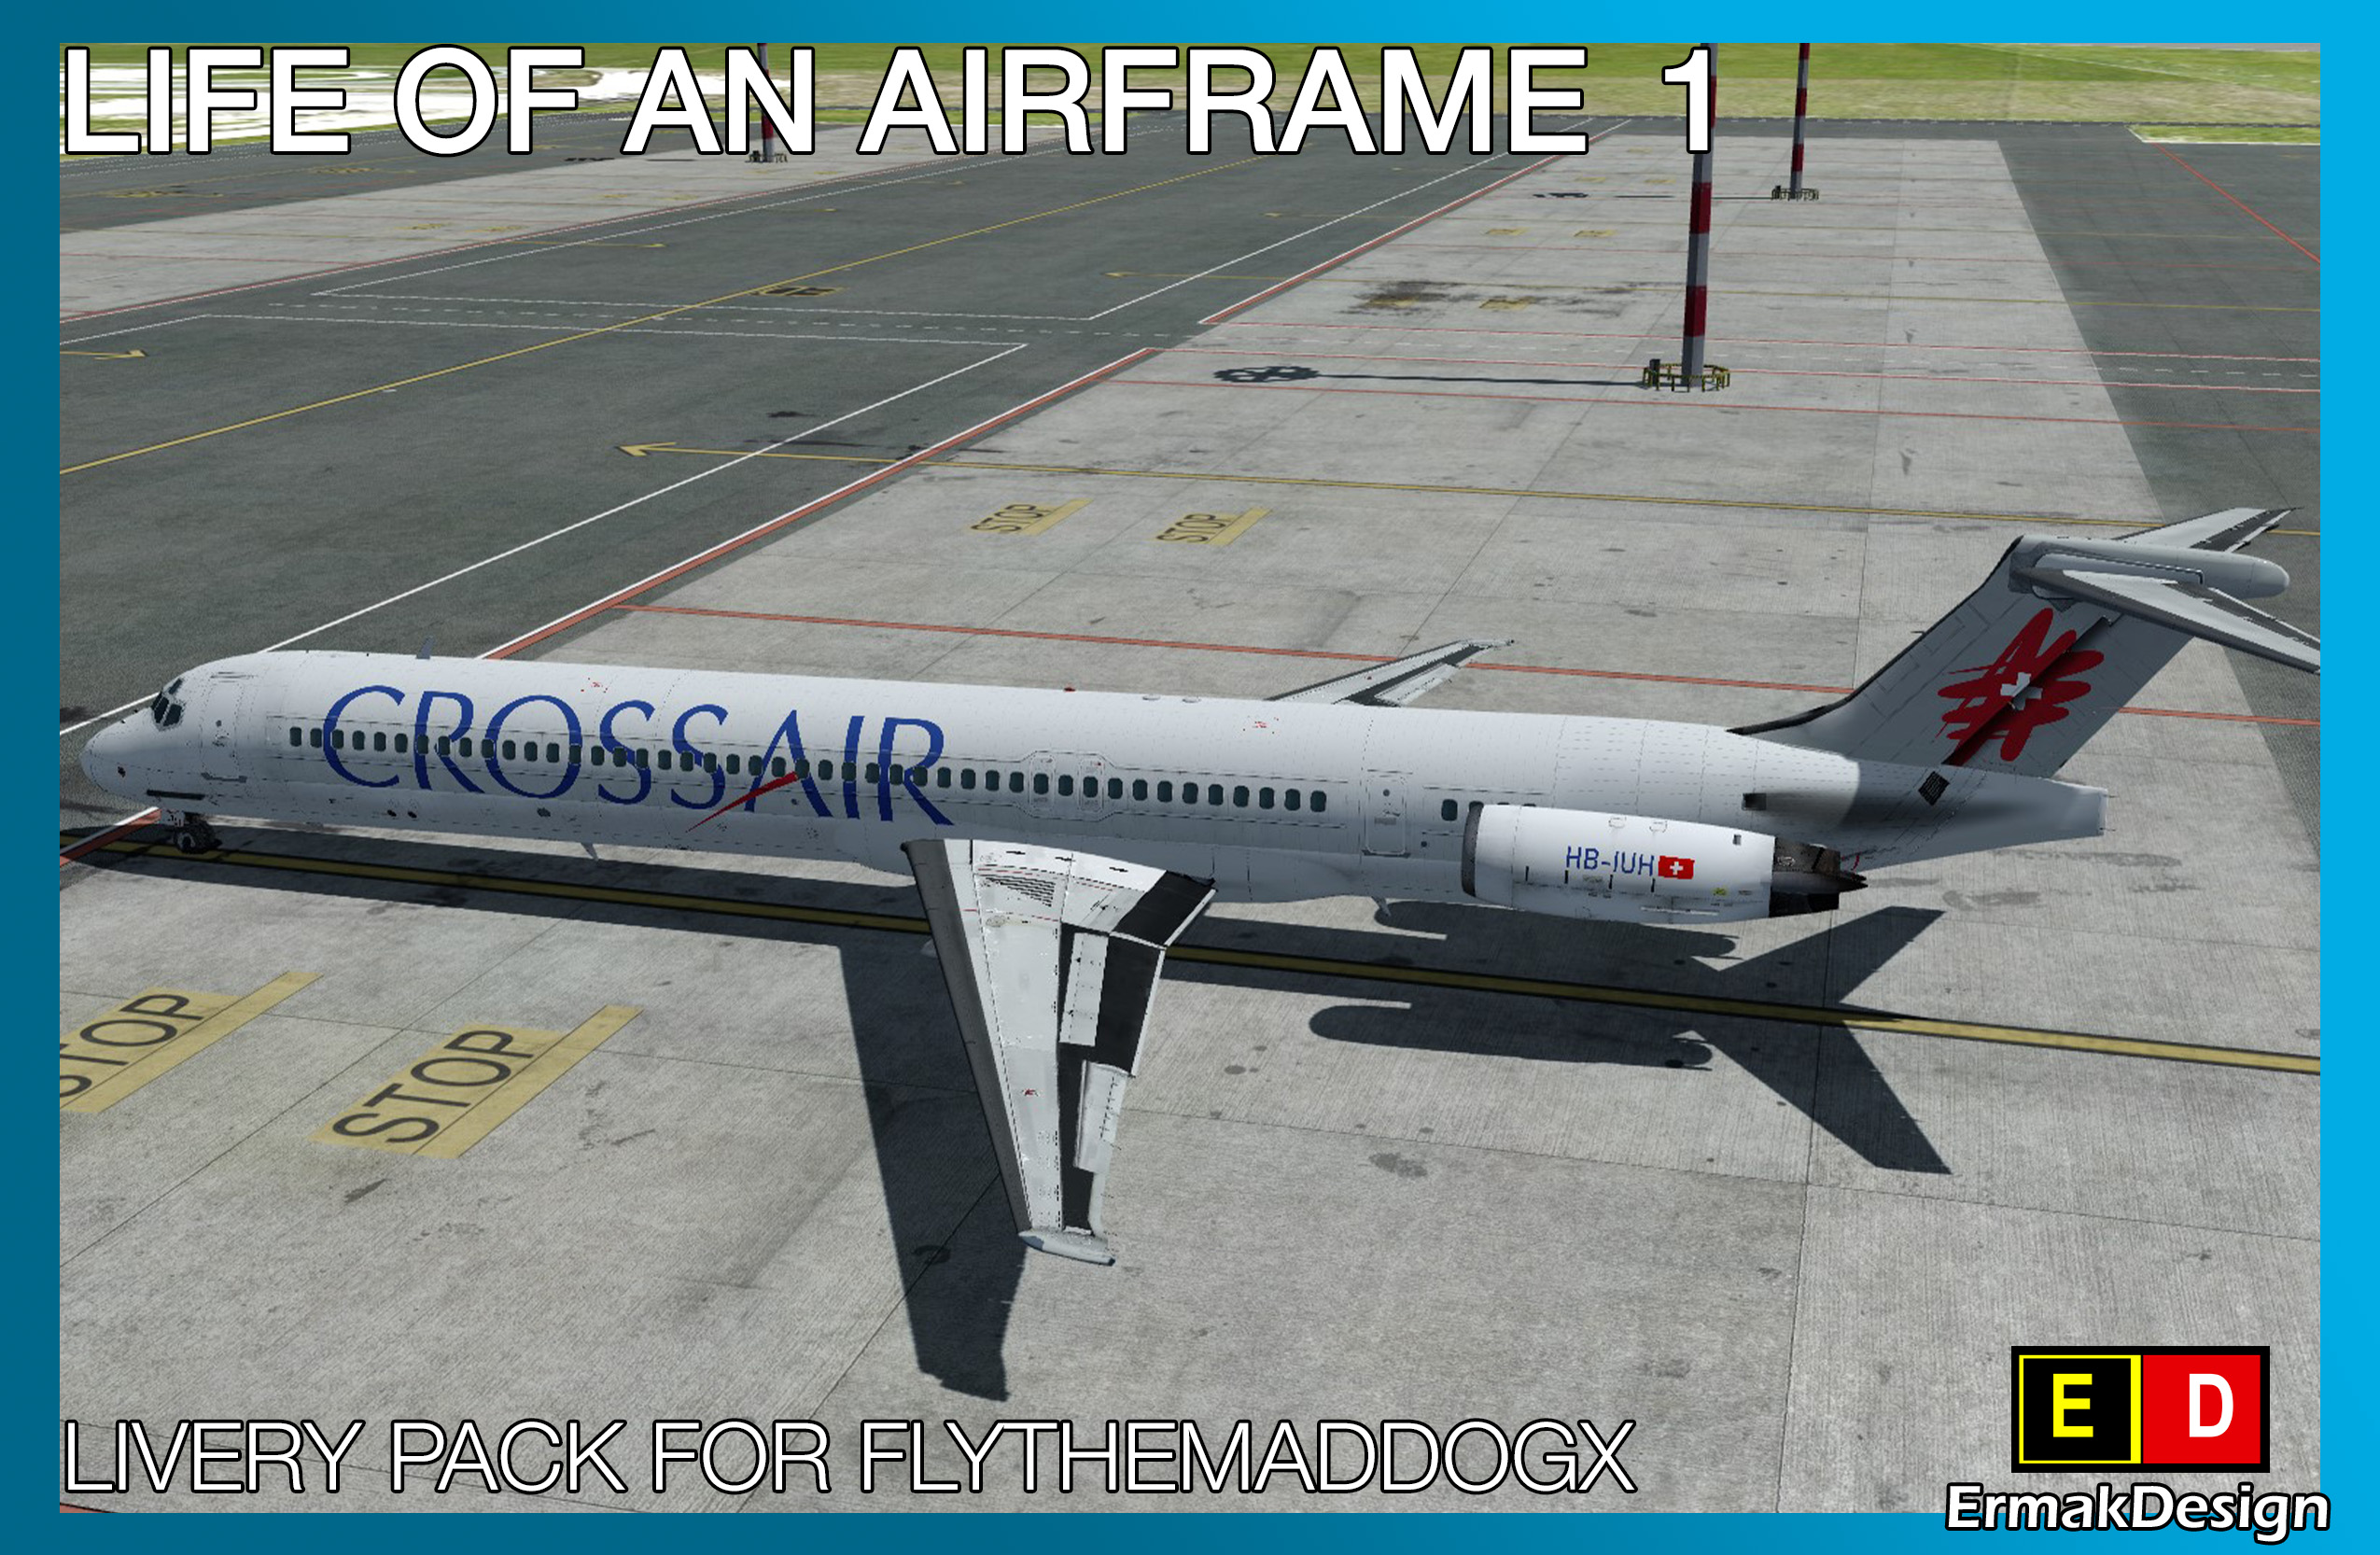 ERMAKDESIGN - LIFE OF AN AIRFRAME LIVERY PACK 1 FOR FLYTHEMADDOGX